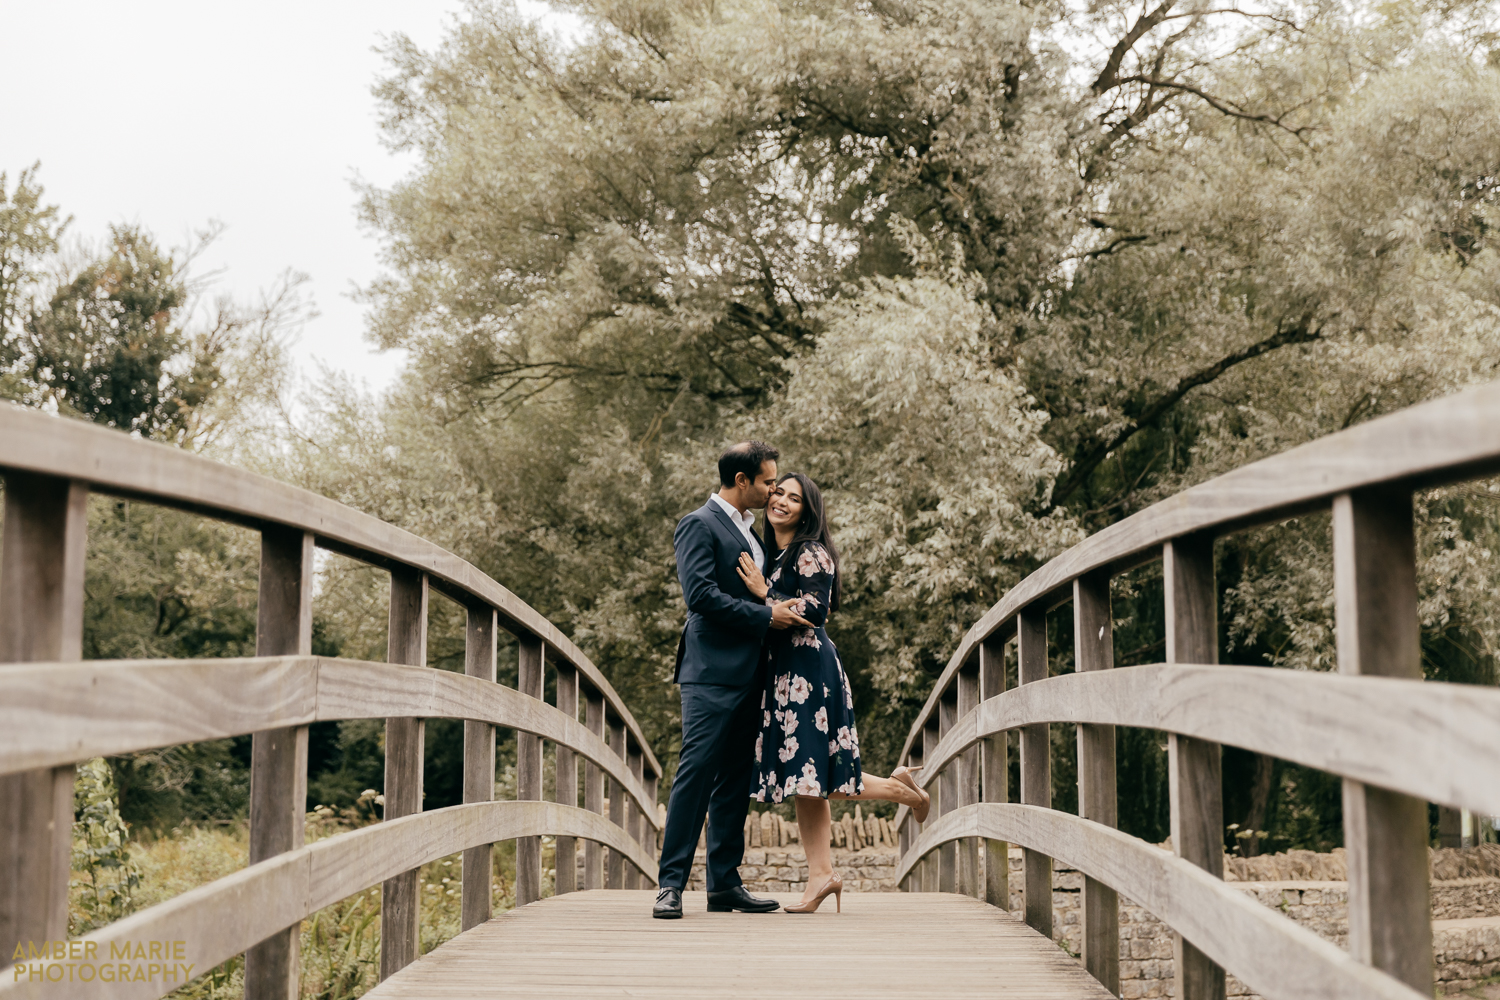 Stylish portrait of bride and groom kissing on a bridge, surrounded by trees in The Cotswolds.